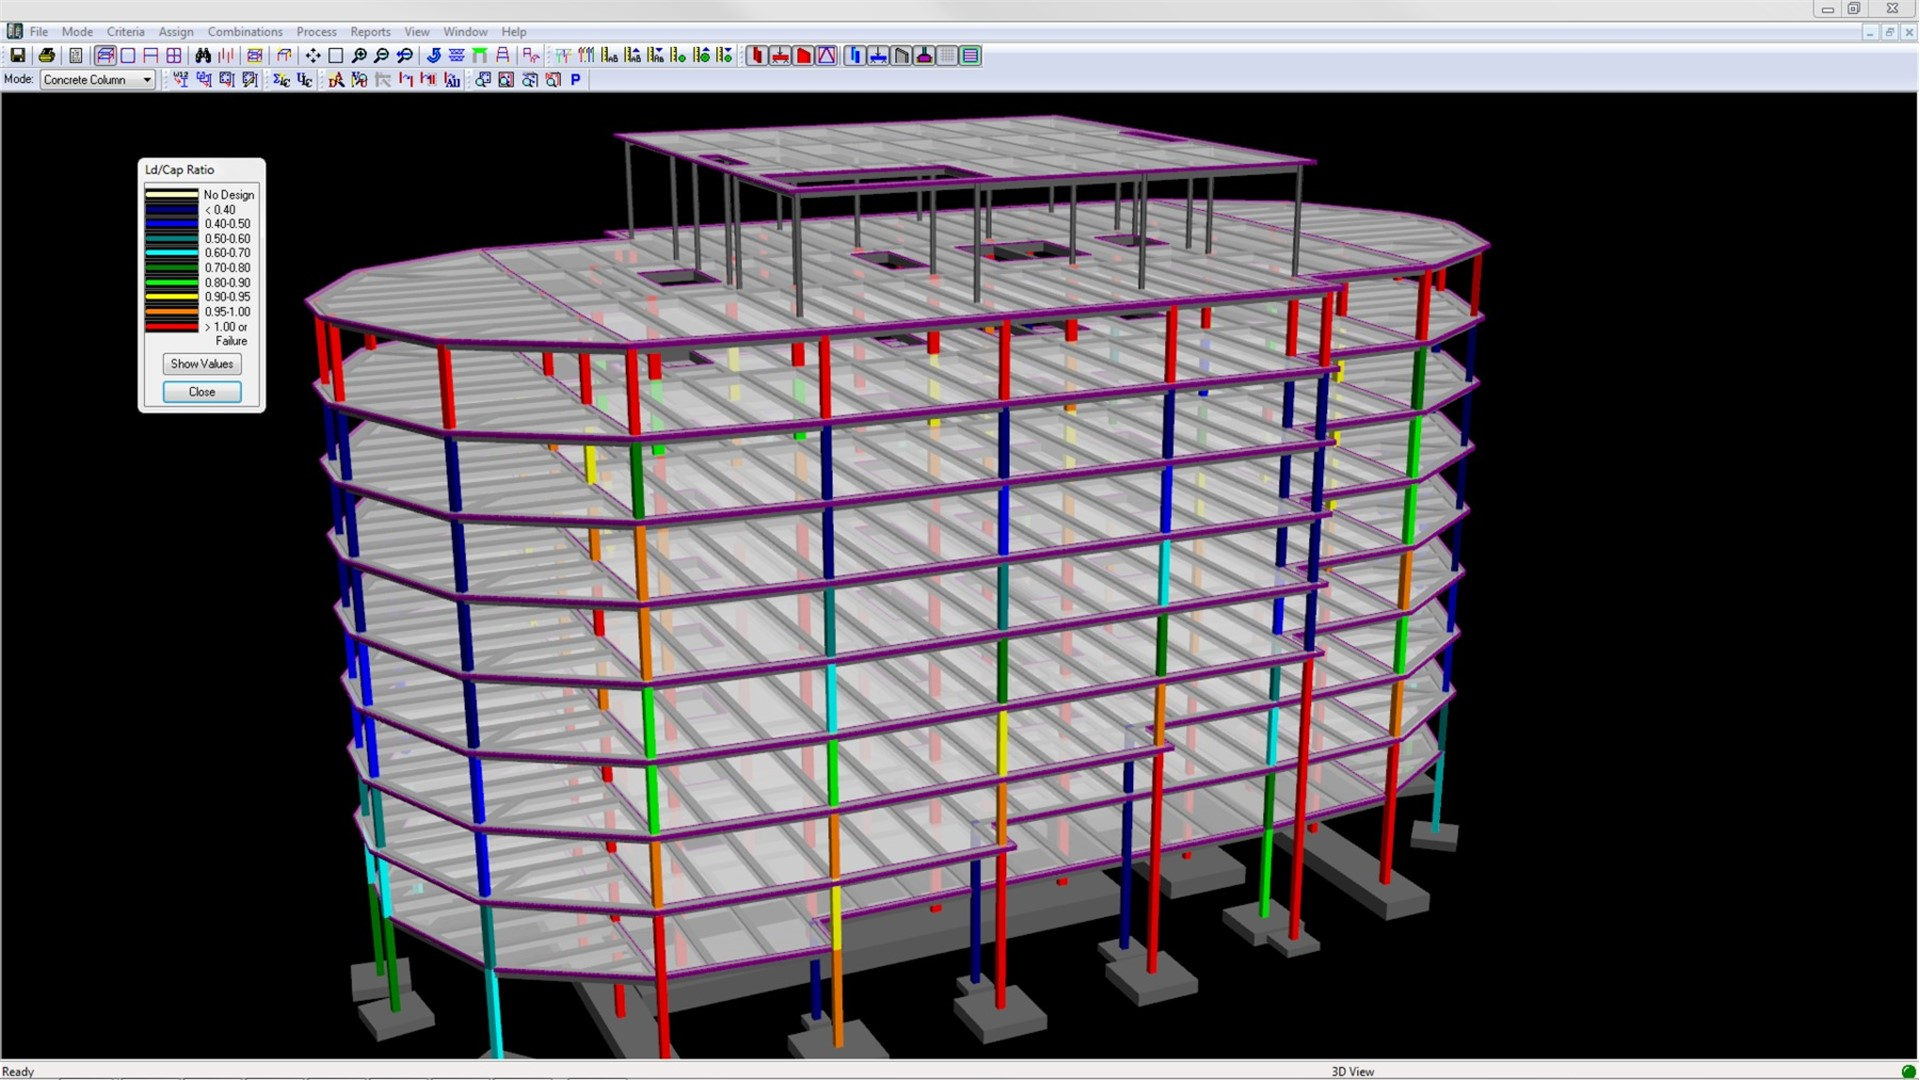 Design and analyze structural models_RFRAME_RSTEEL_RCONCRETE_RFDN_RSS_SE